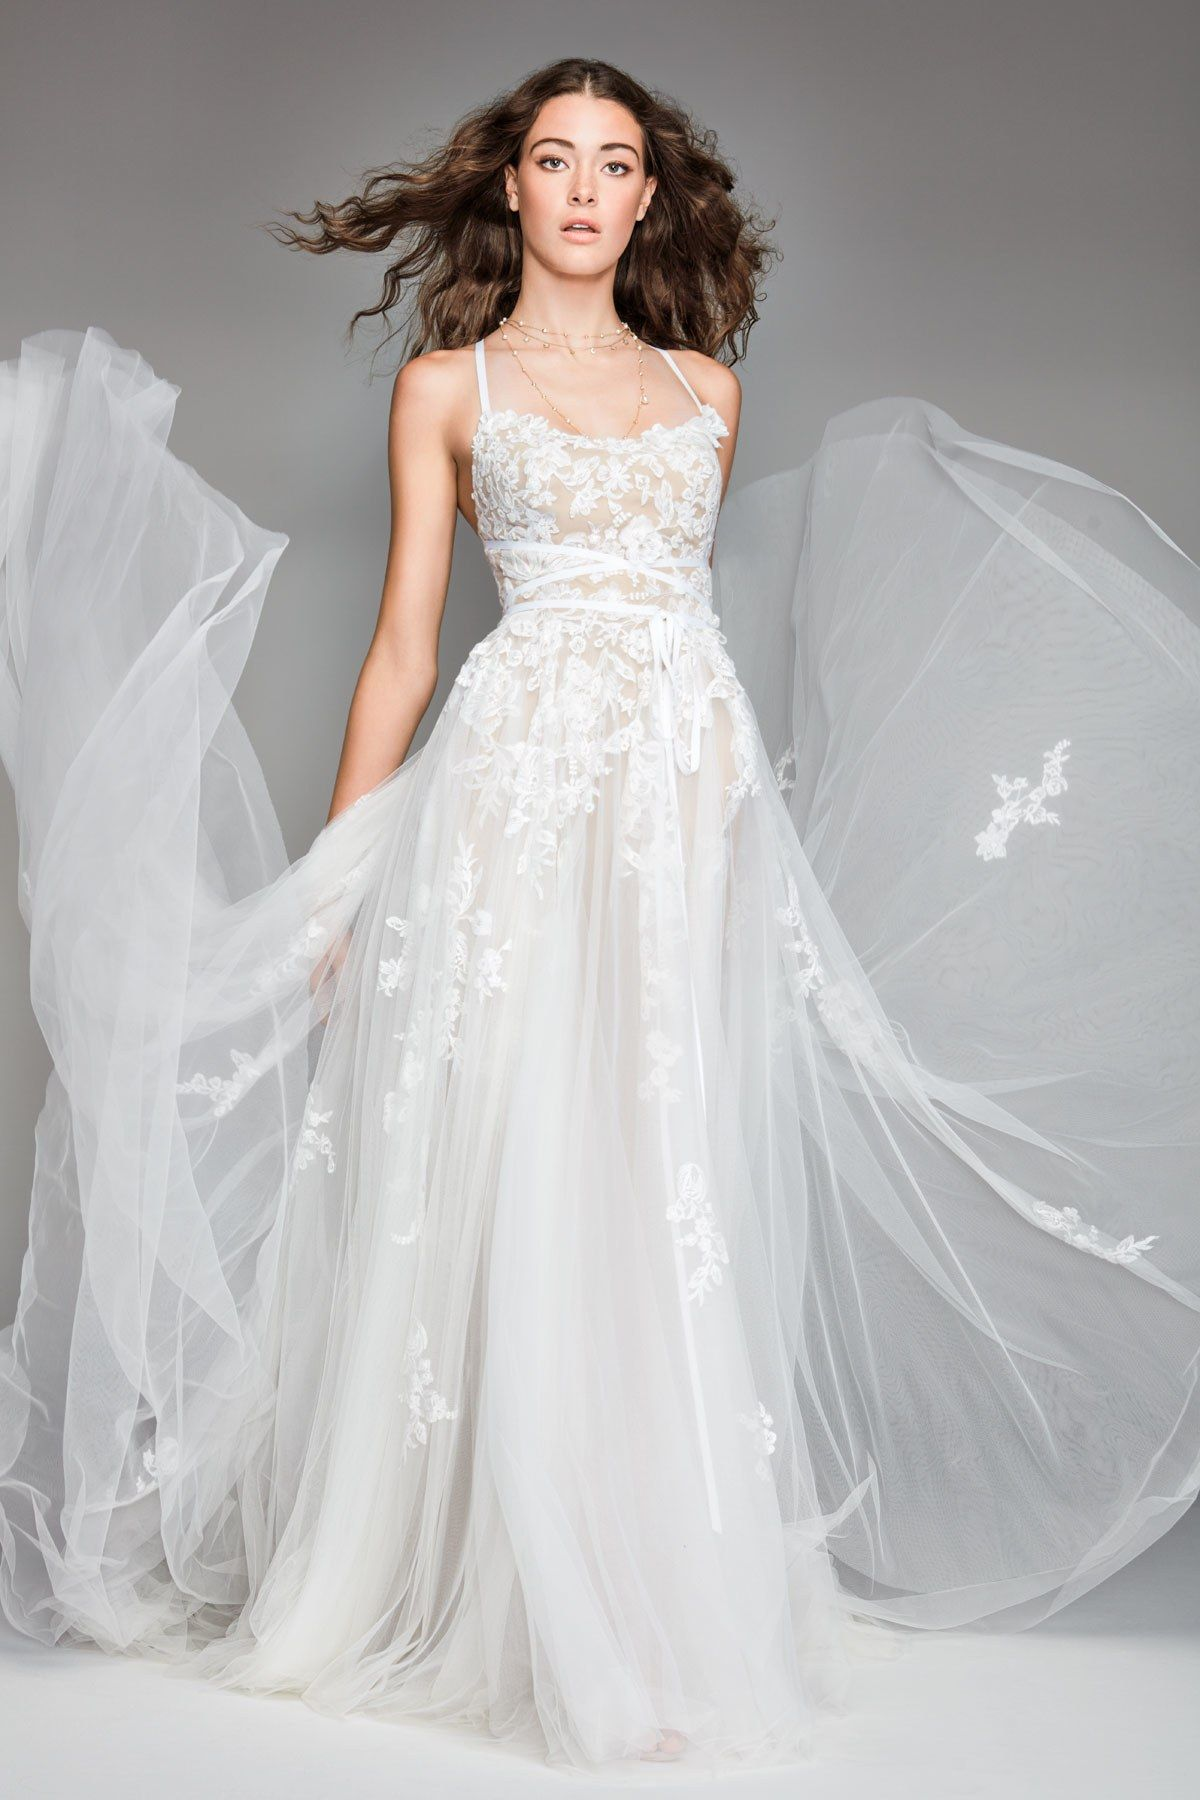 Willowby by watters bridal u wedding dress collection fall